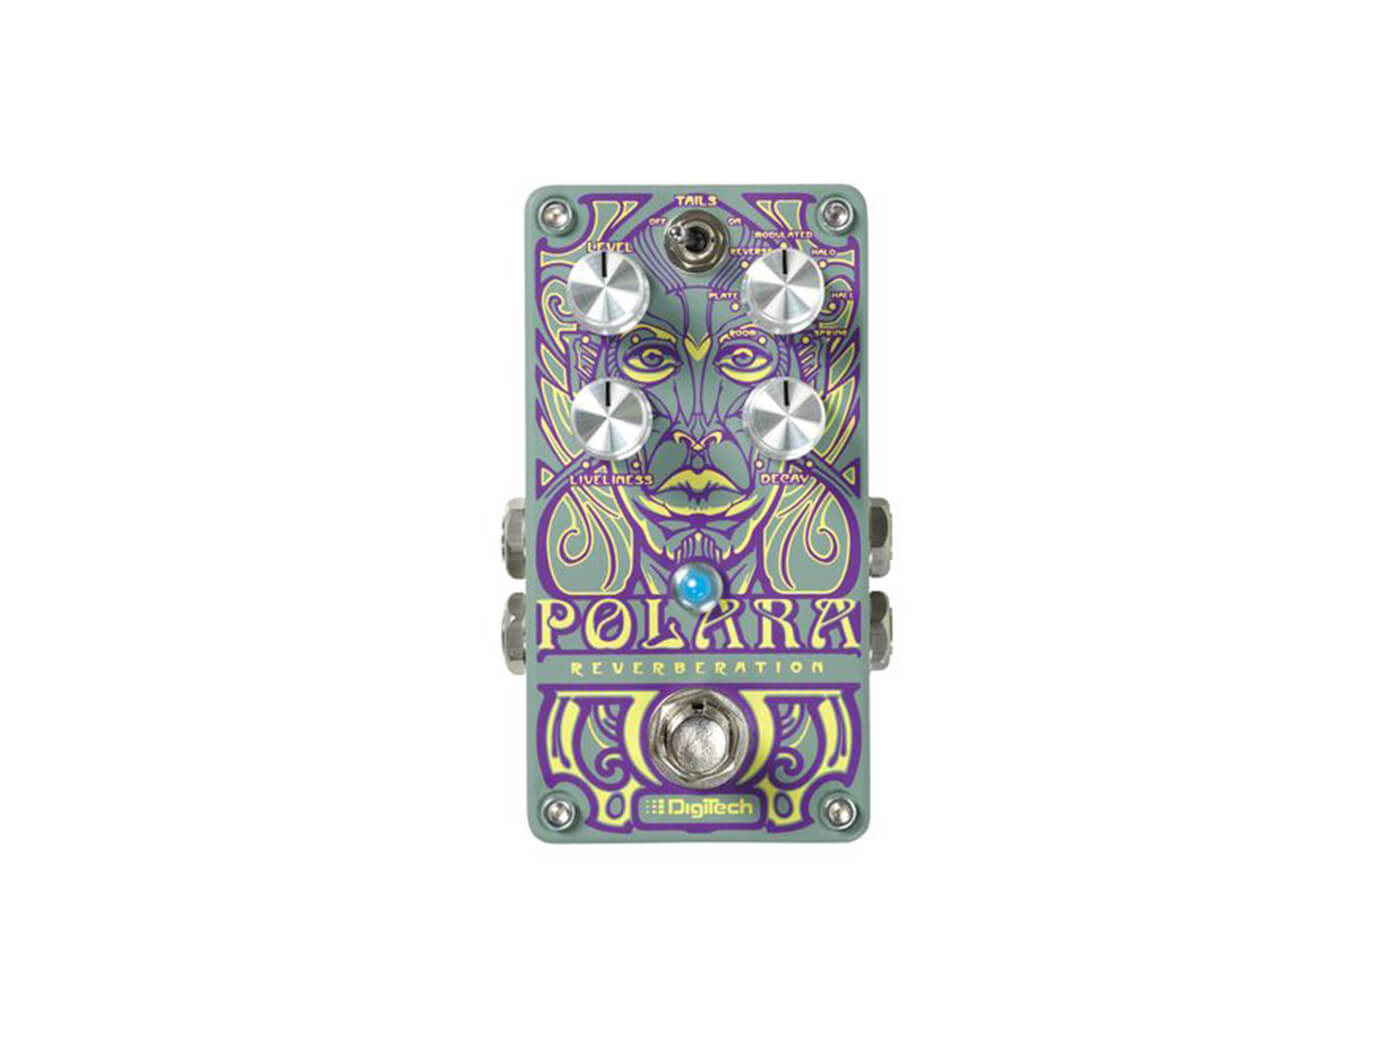 The Digitech Polara